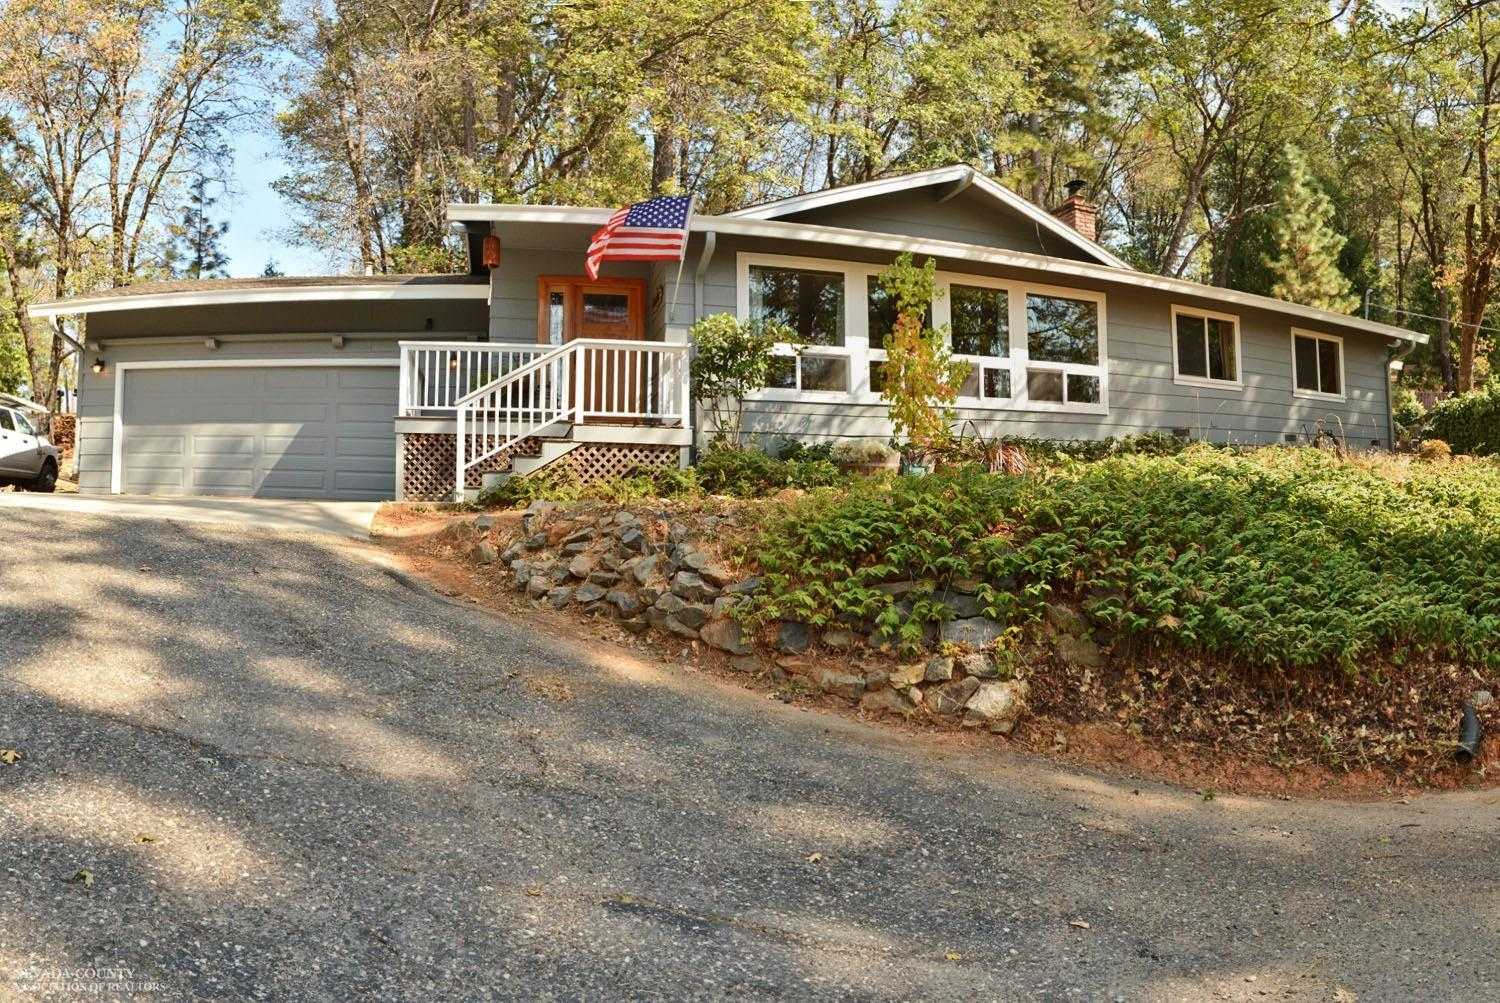 $442,000 - 4Br/2Ba -  for Sale in Nevada City